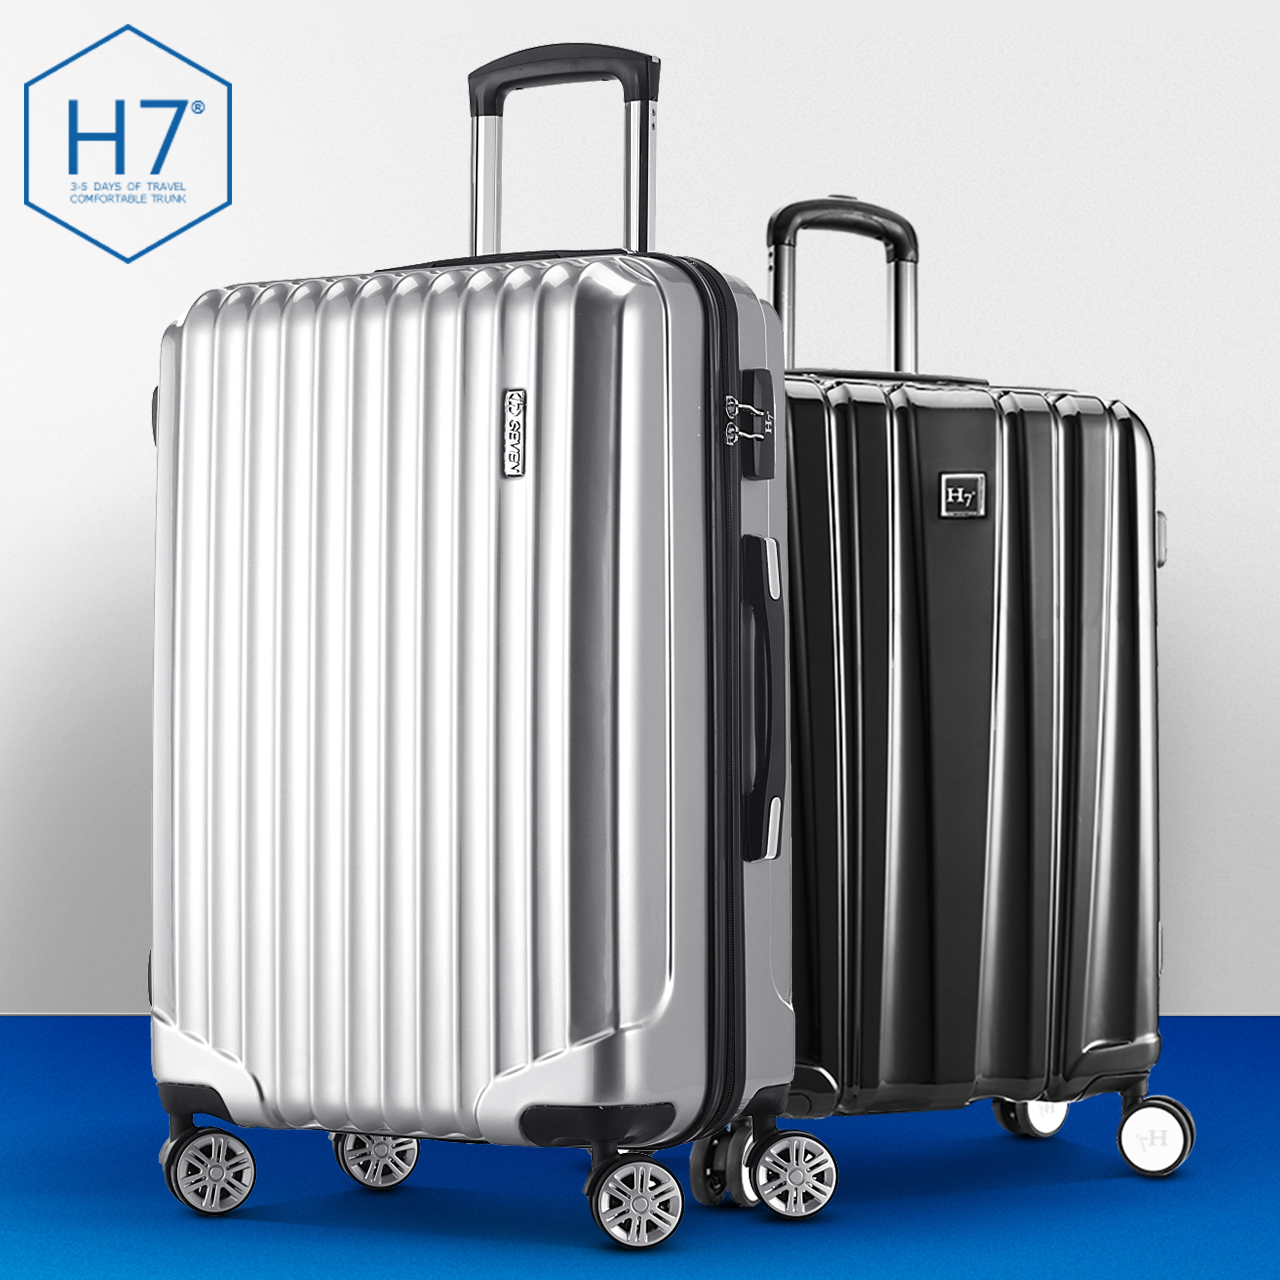 H7 fashion trolley suitcase caster 24 female 24-inch suitcase suitcase 20-inch board chassis suitcase checked box 20 password Lock